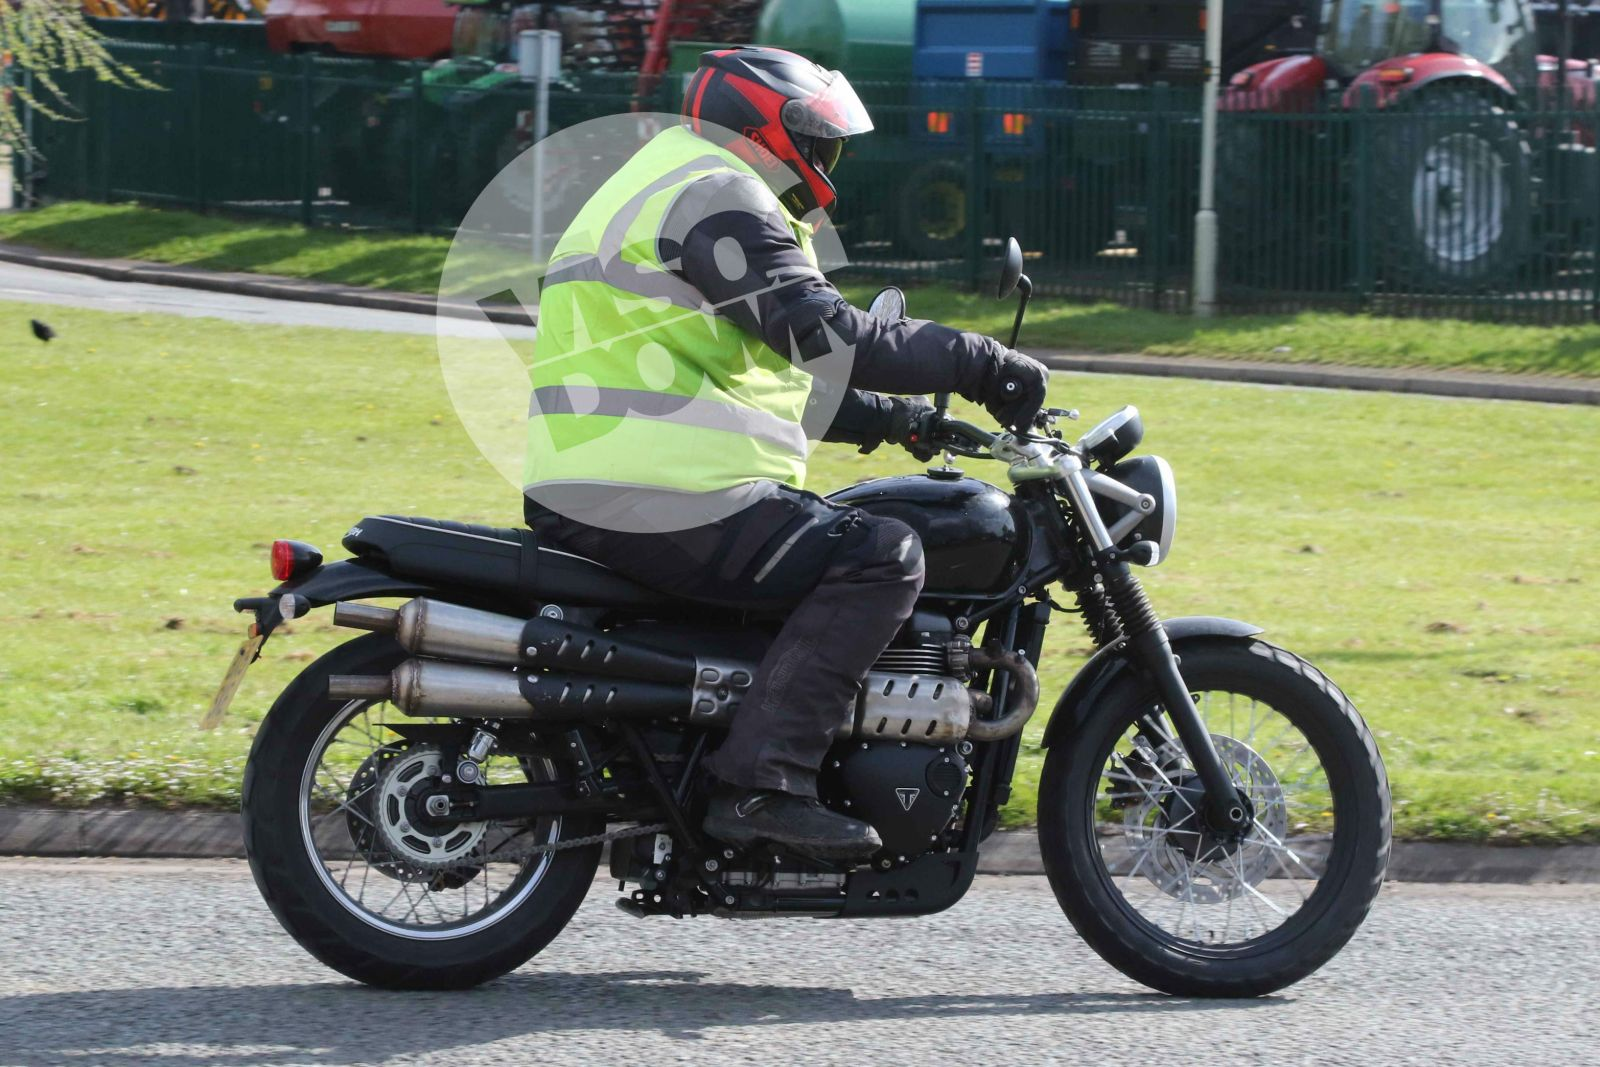 spied upcoming triumph street twin based scrambler 39 s test mule spotted motoroids. Black Bedroom Furniture Sets. Home Design Ideas